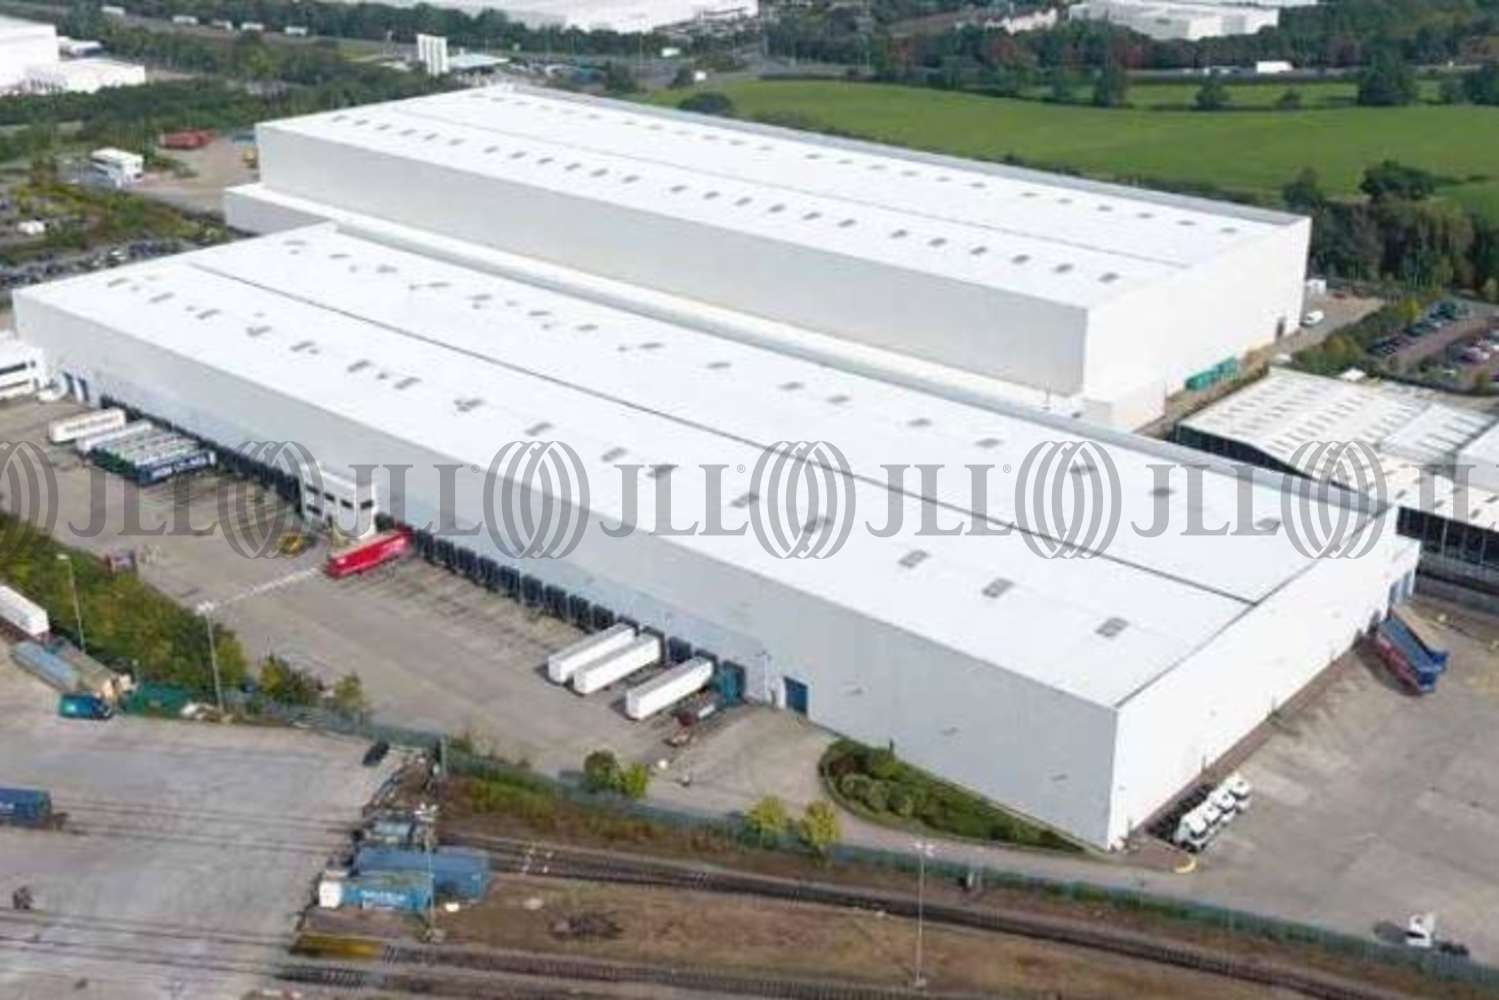 Industrial Daventry, NN6 7FT - DC240 Prologis RFI DIRFT - 1